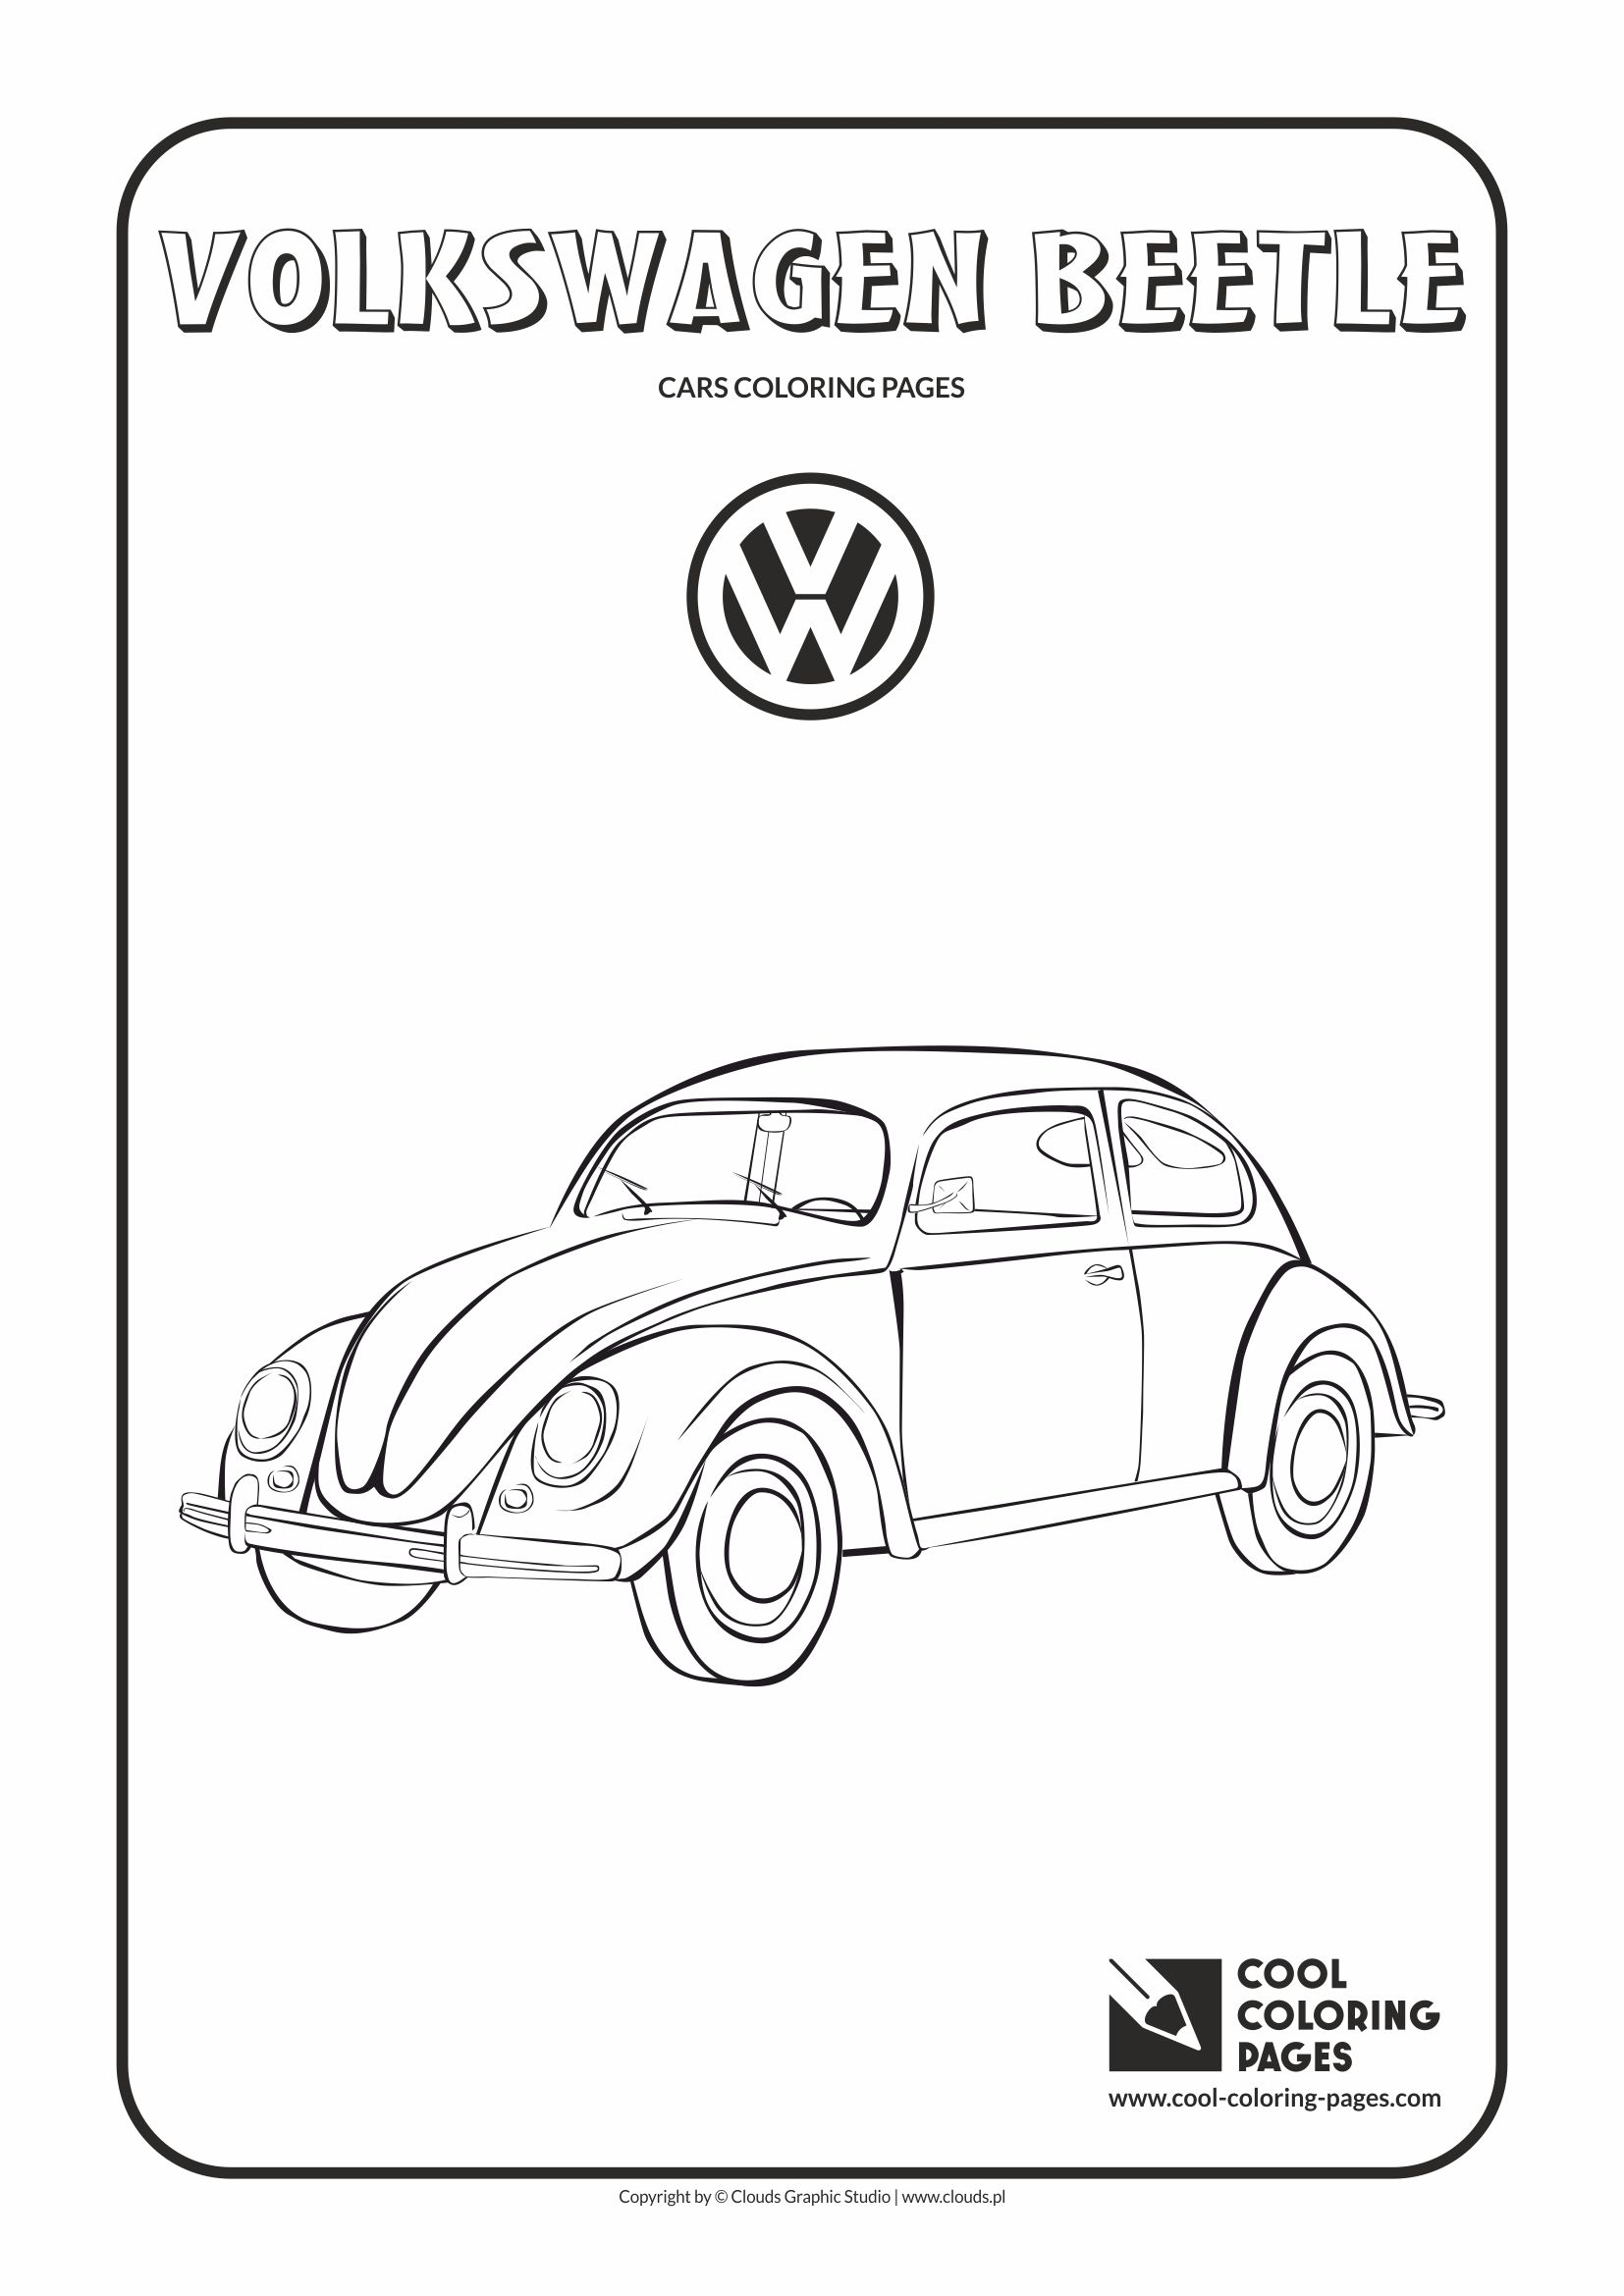 Cool Coloring Pages Volkswagen Beetle Coloring Page